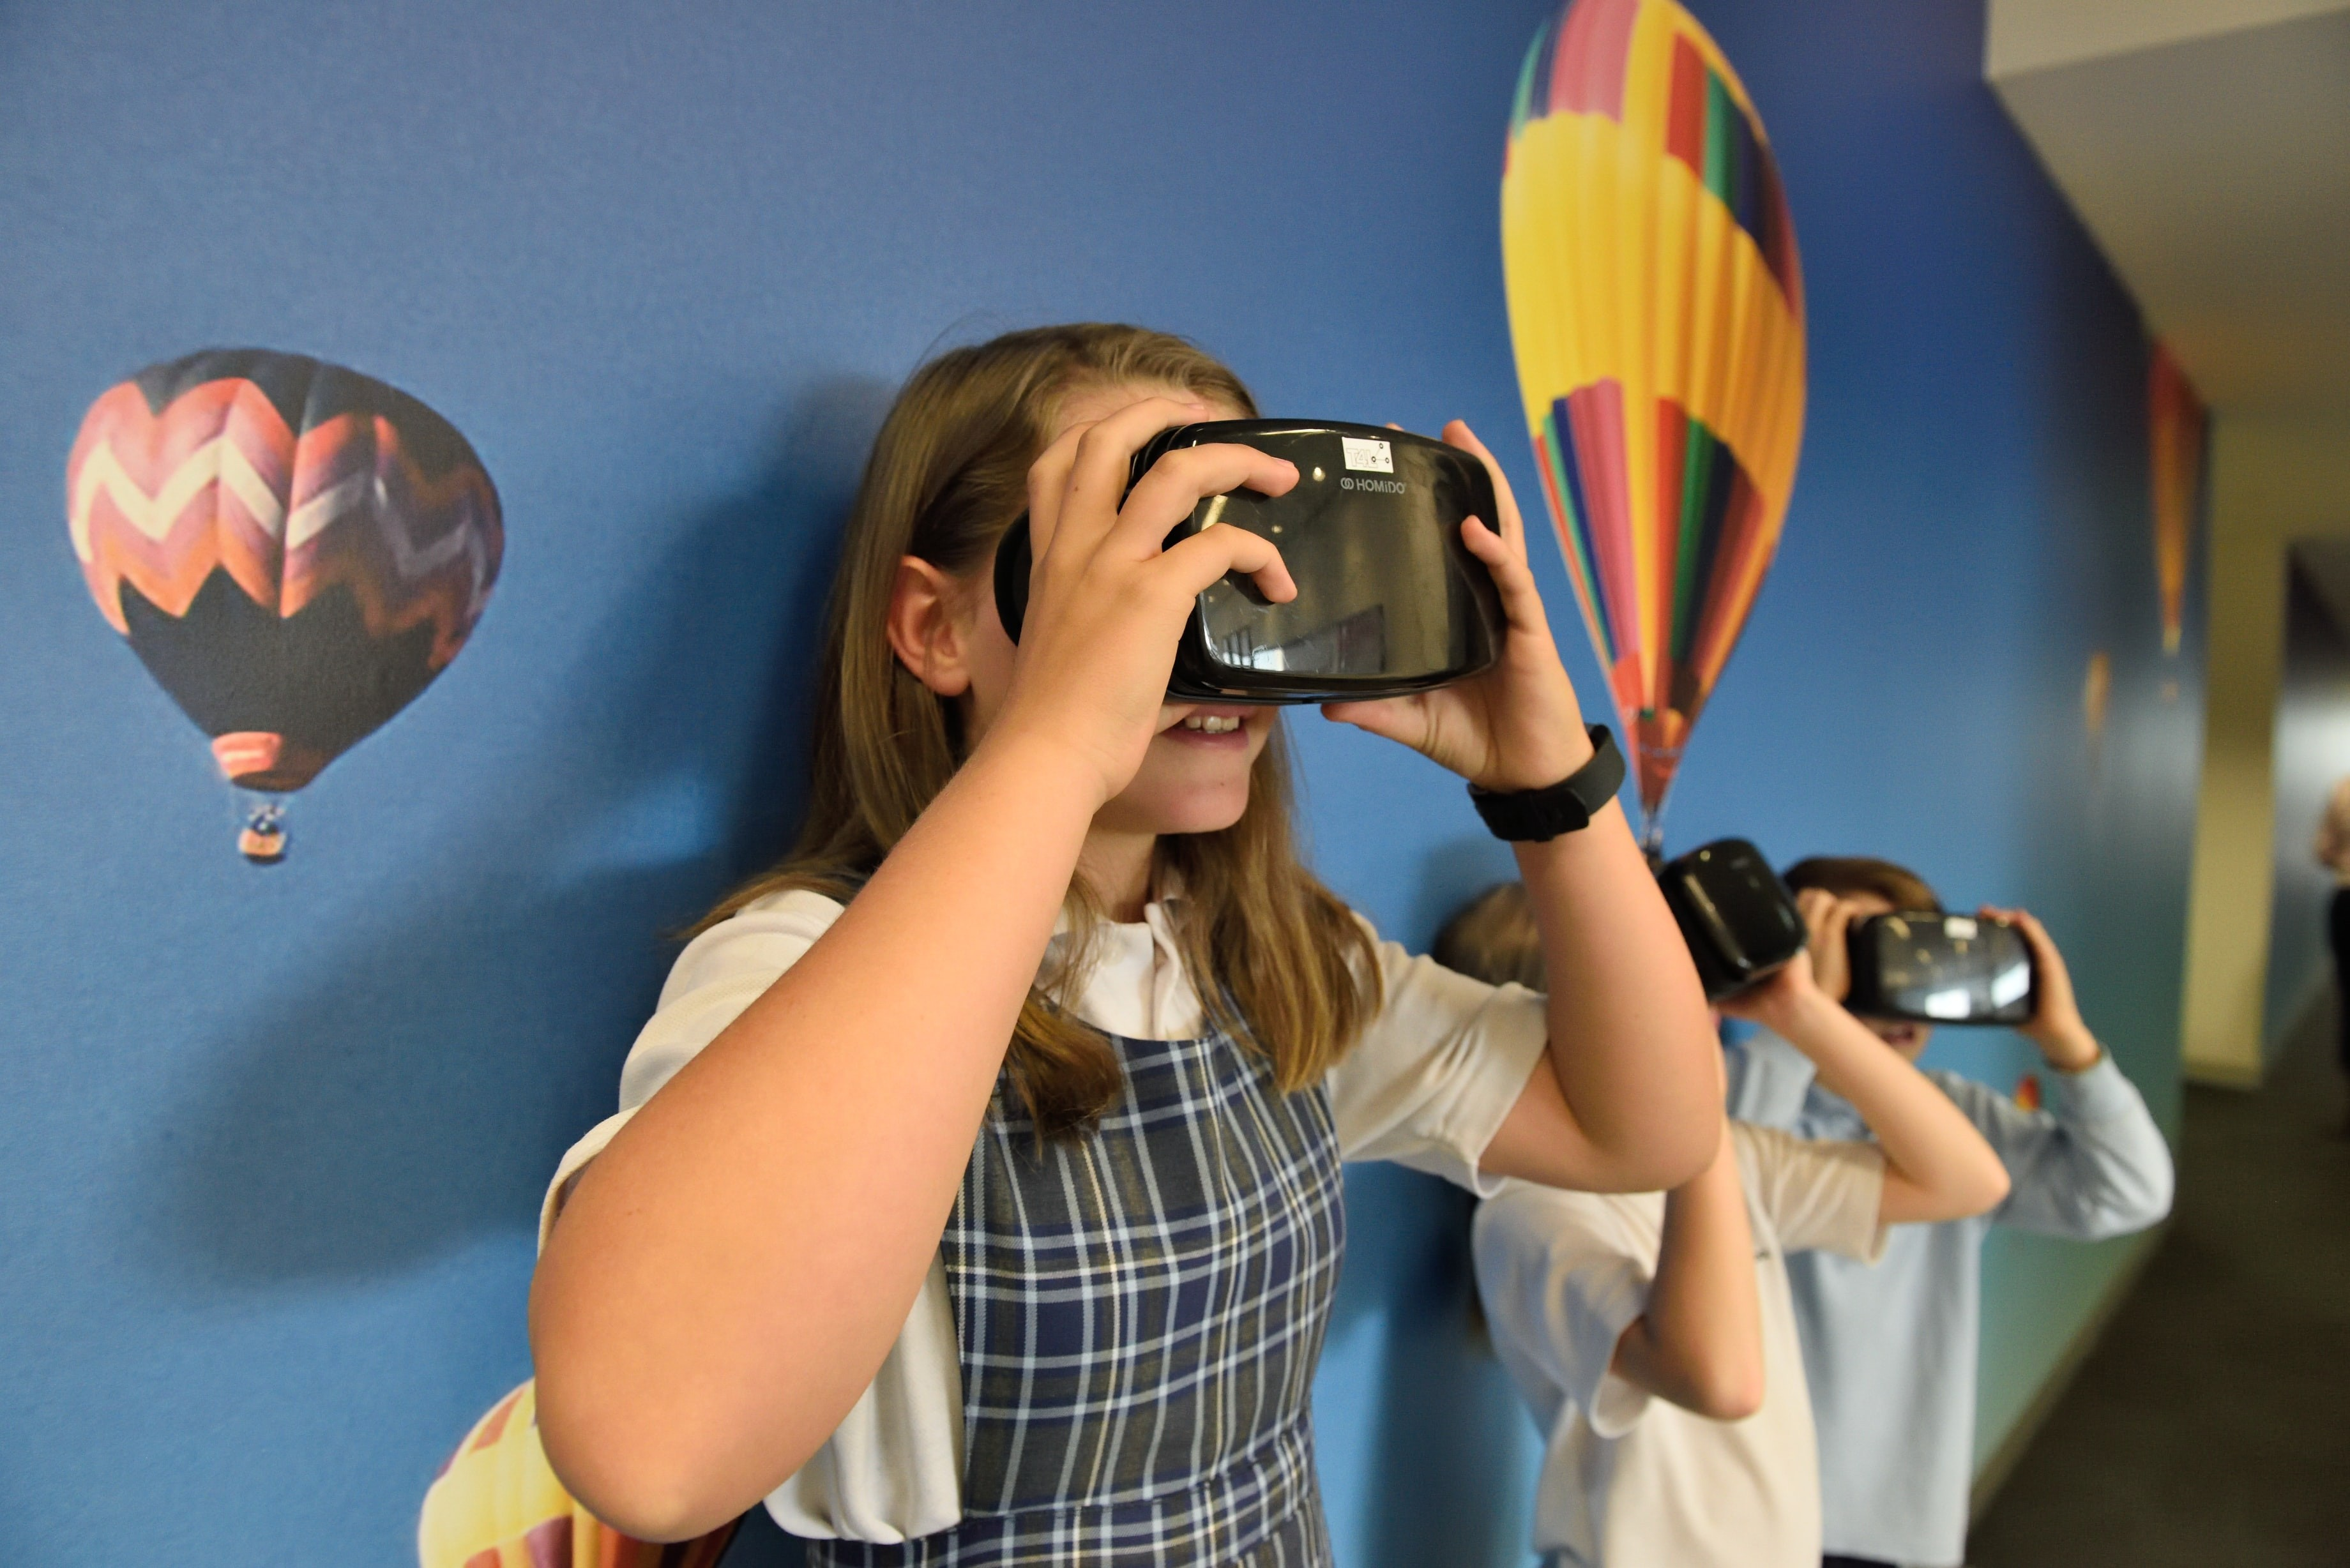 Three students use virtual reality headsets as part of a type of game-based learning activity.